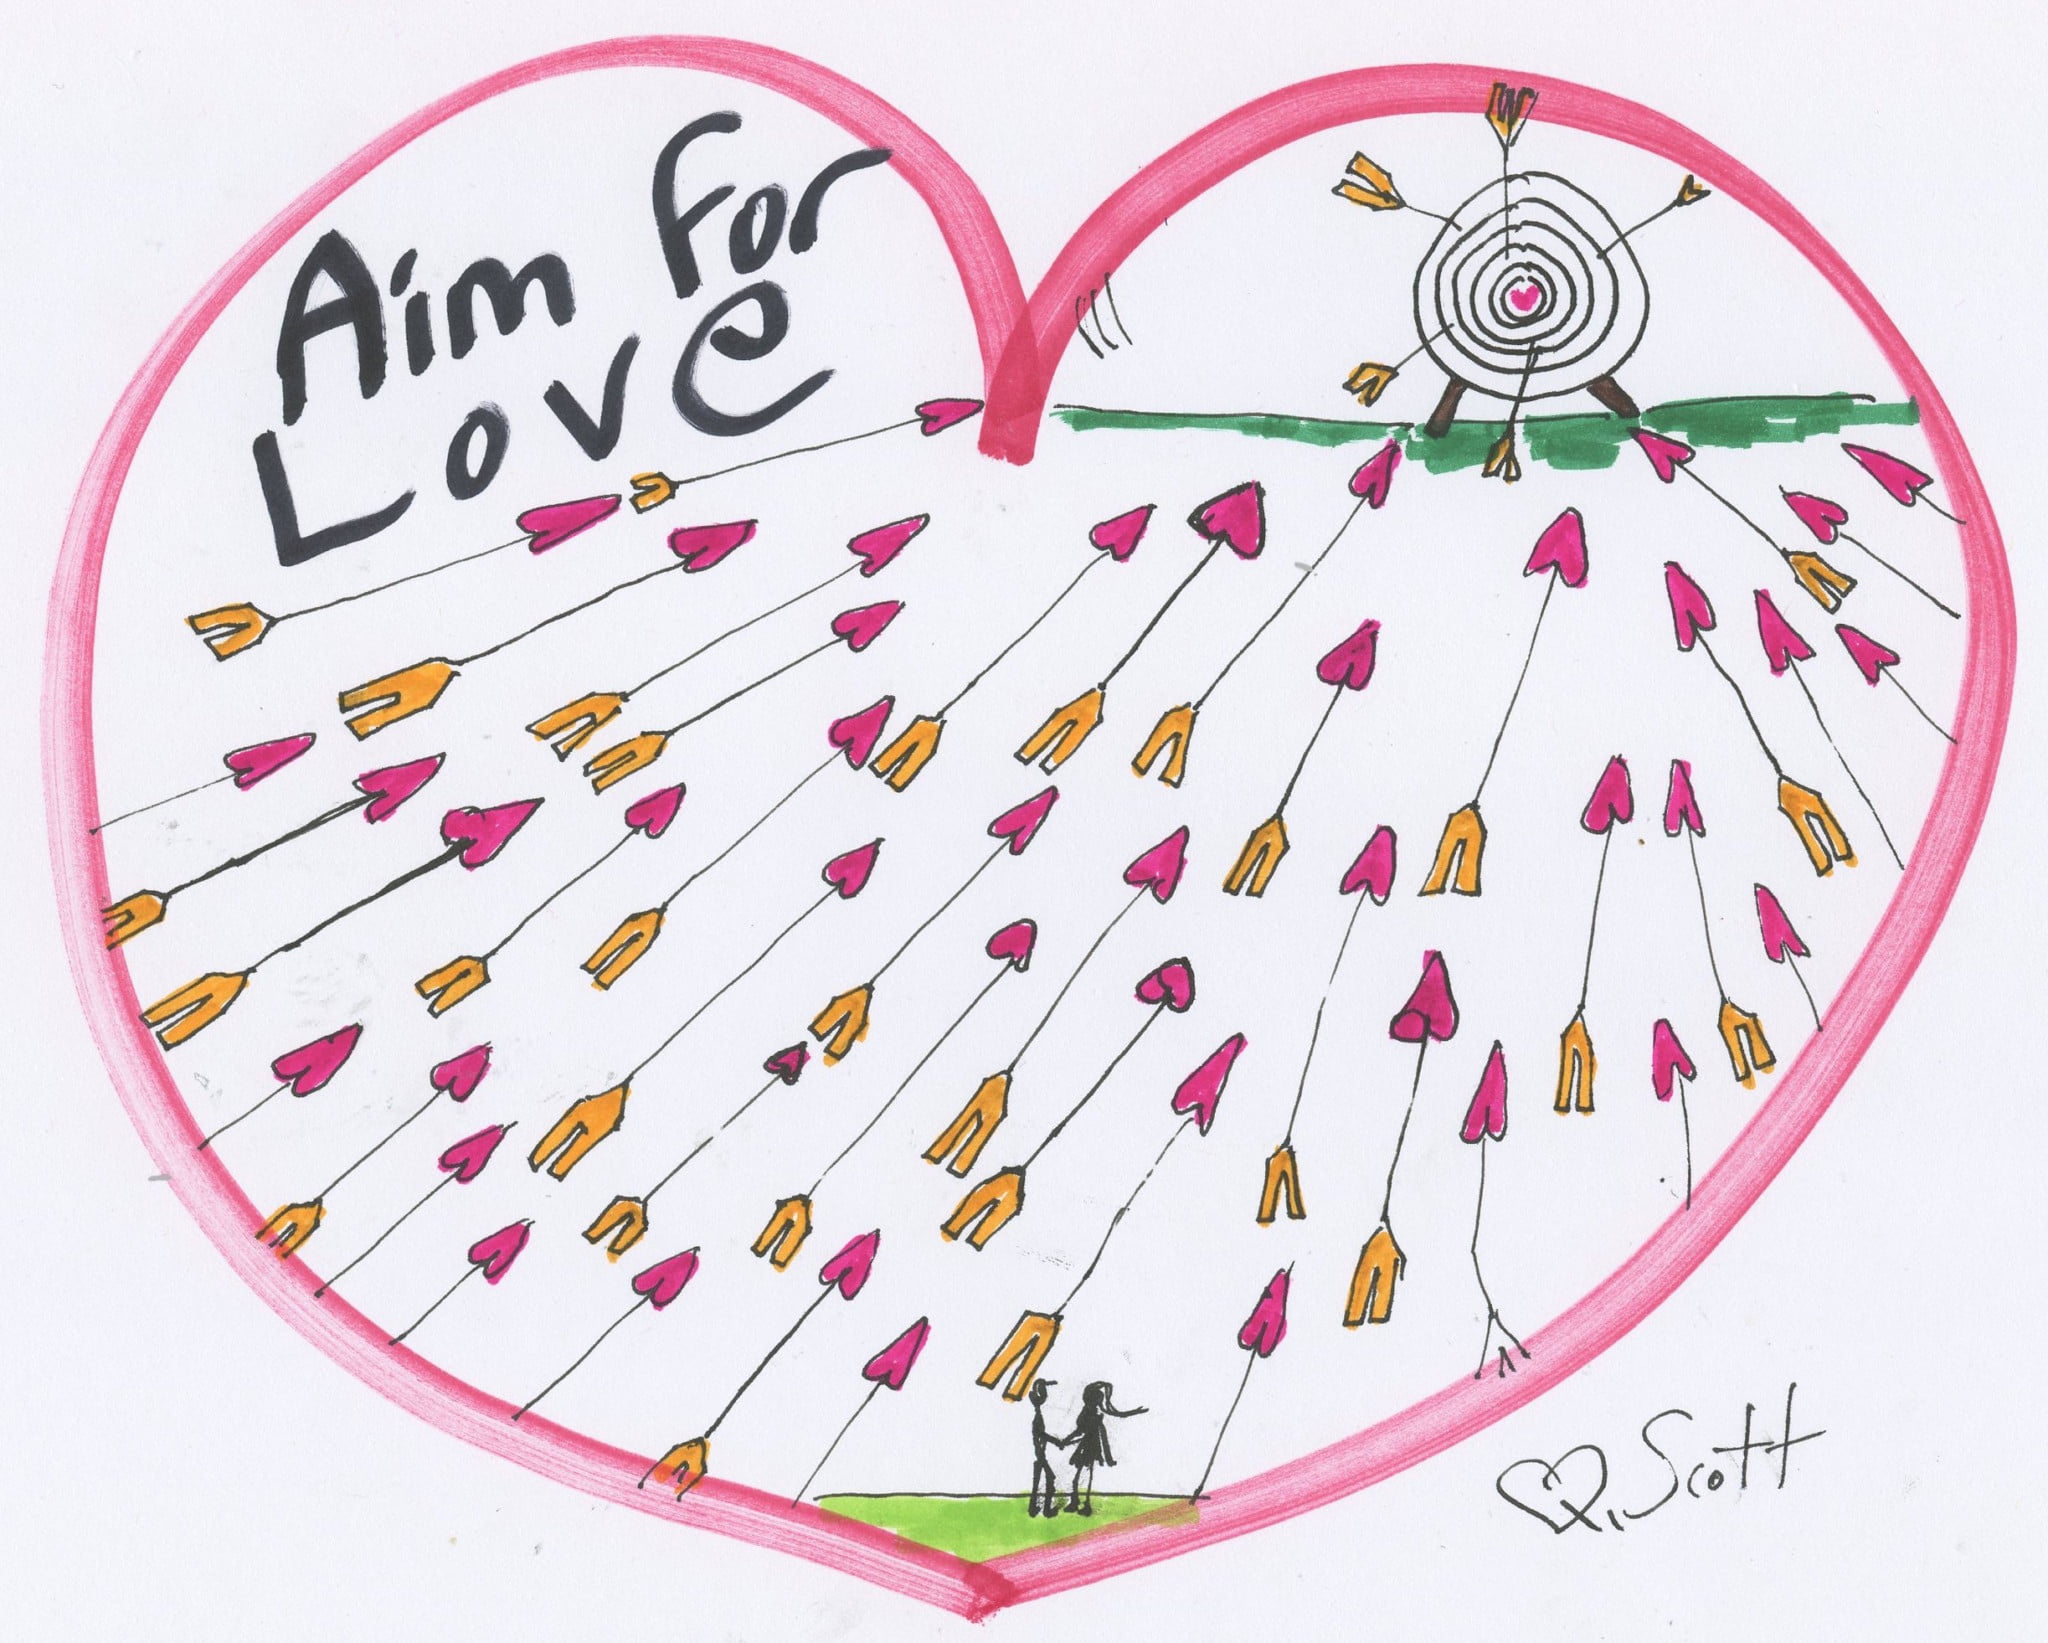 is there anything greater to aim for?